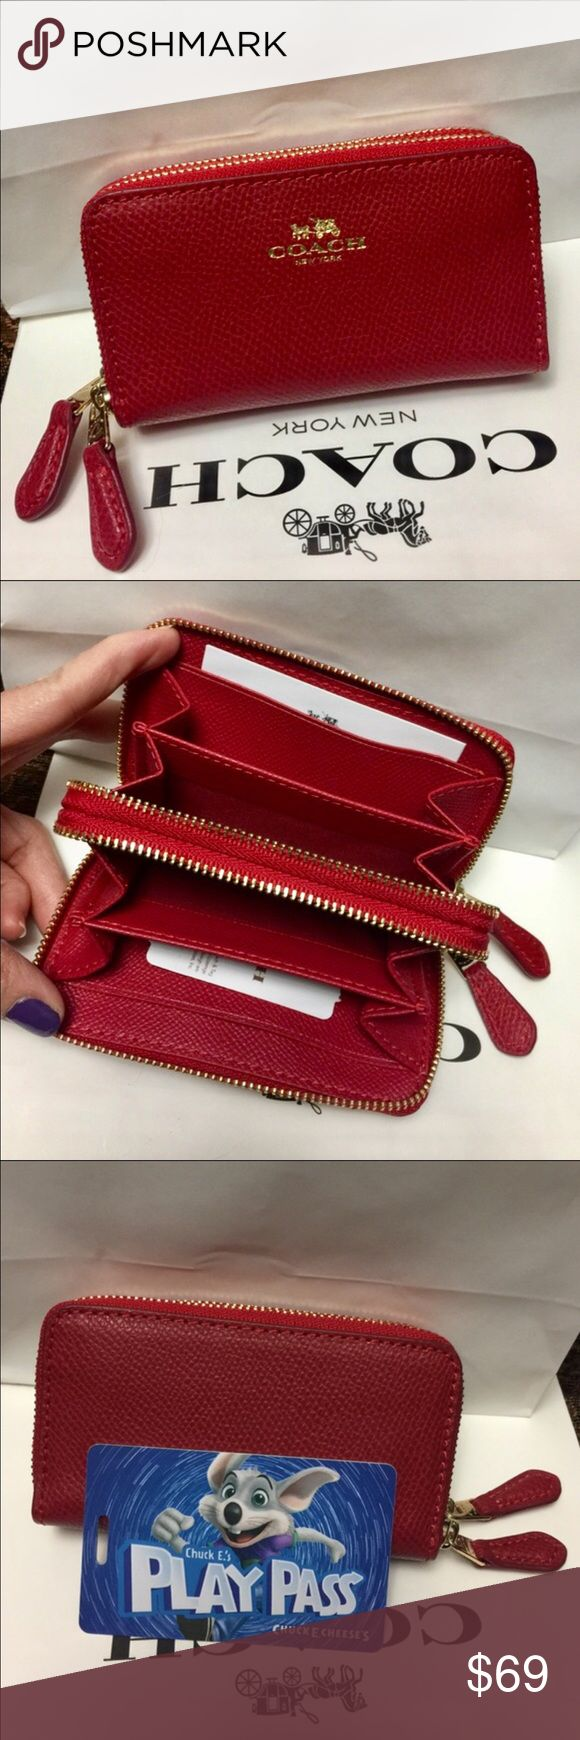 ❤️Coach Wallet❤️ 100% Authentic Coach mini Wallet, brand new!.😍😍😍Color True Red.❤️❤️❤️Firm Price!.👍 Coach Bags Wallets